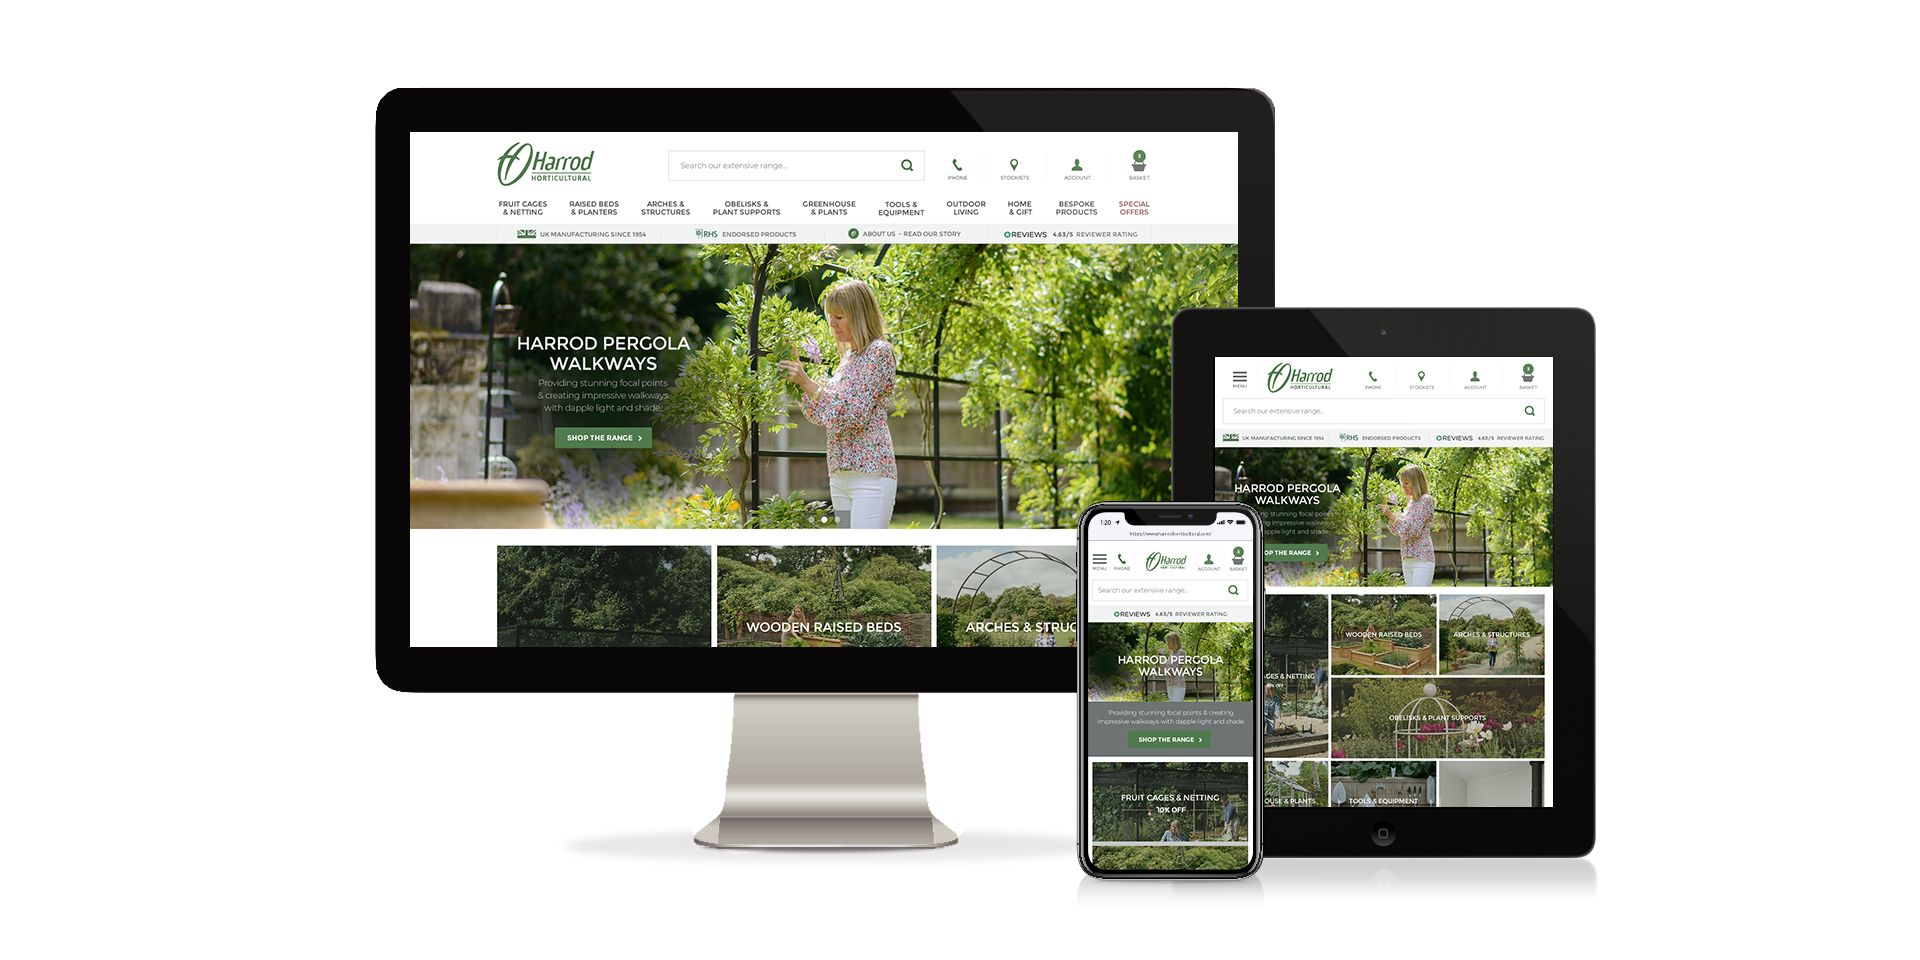 New site launch for long standing Affinity client...